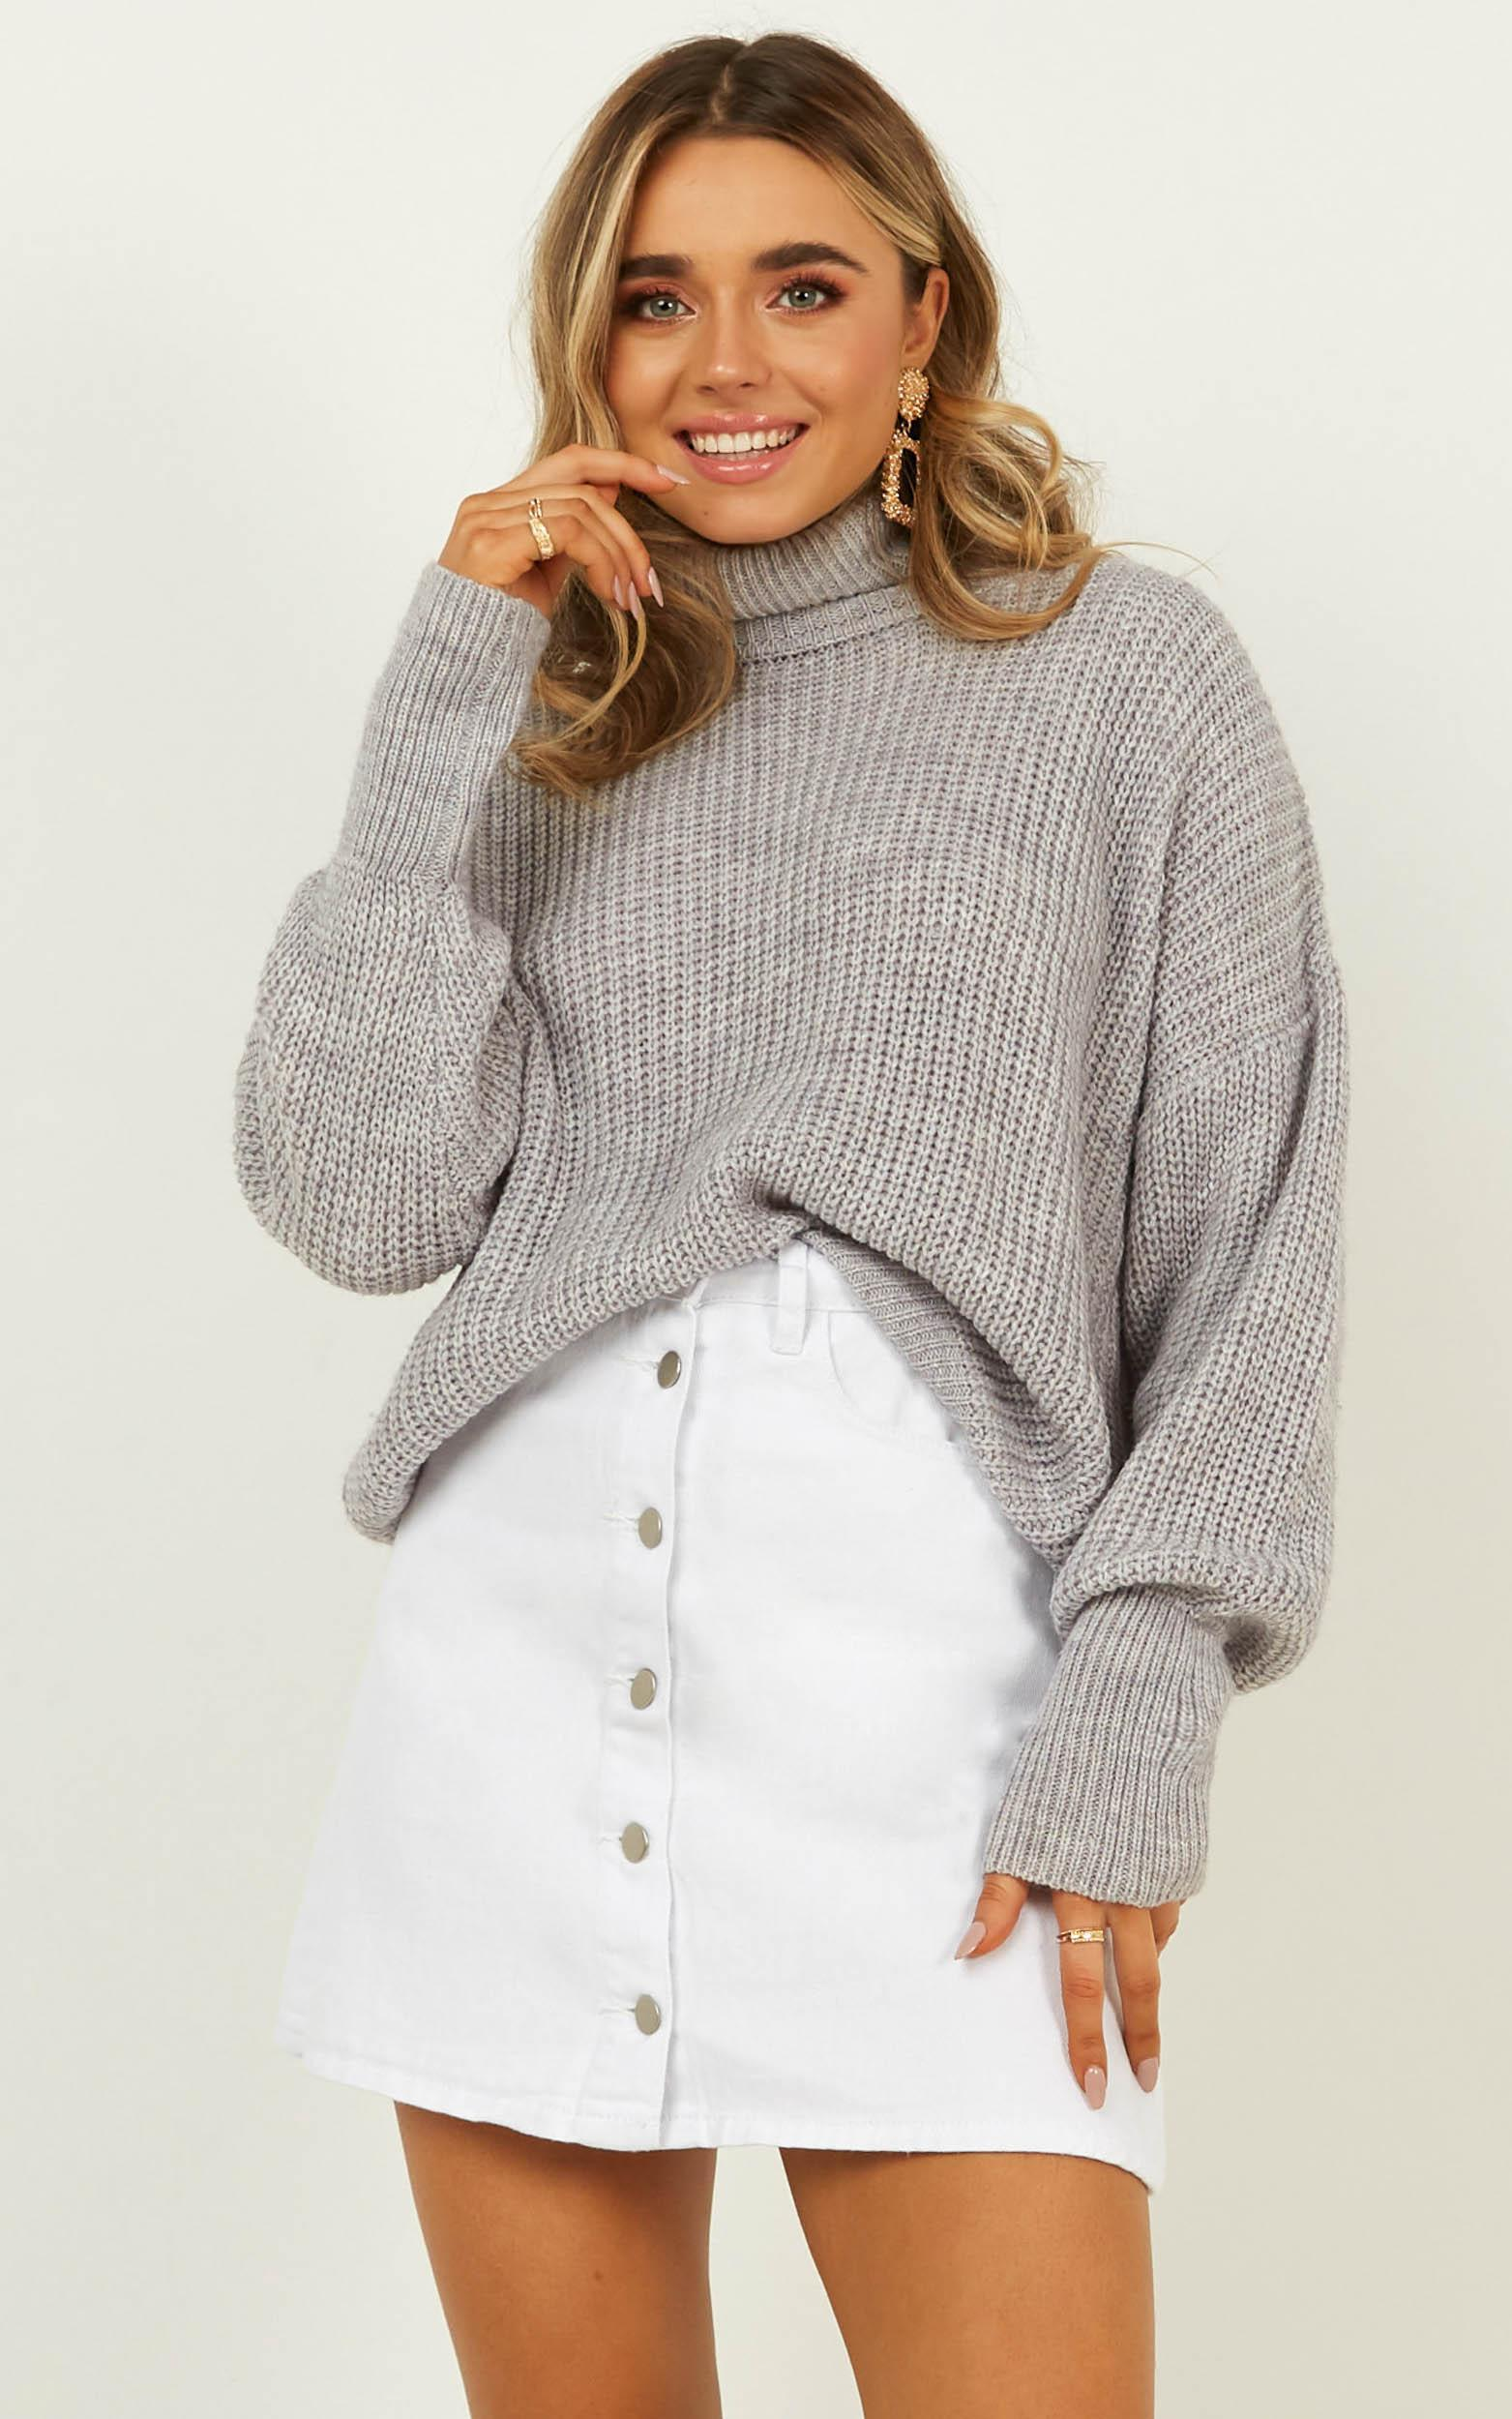 Heads Up Knit Sweater in grey marle - 16 (XXL), Grey, hi-res image number null